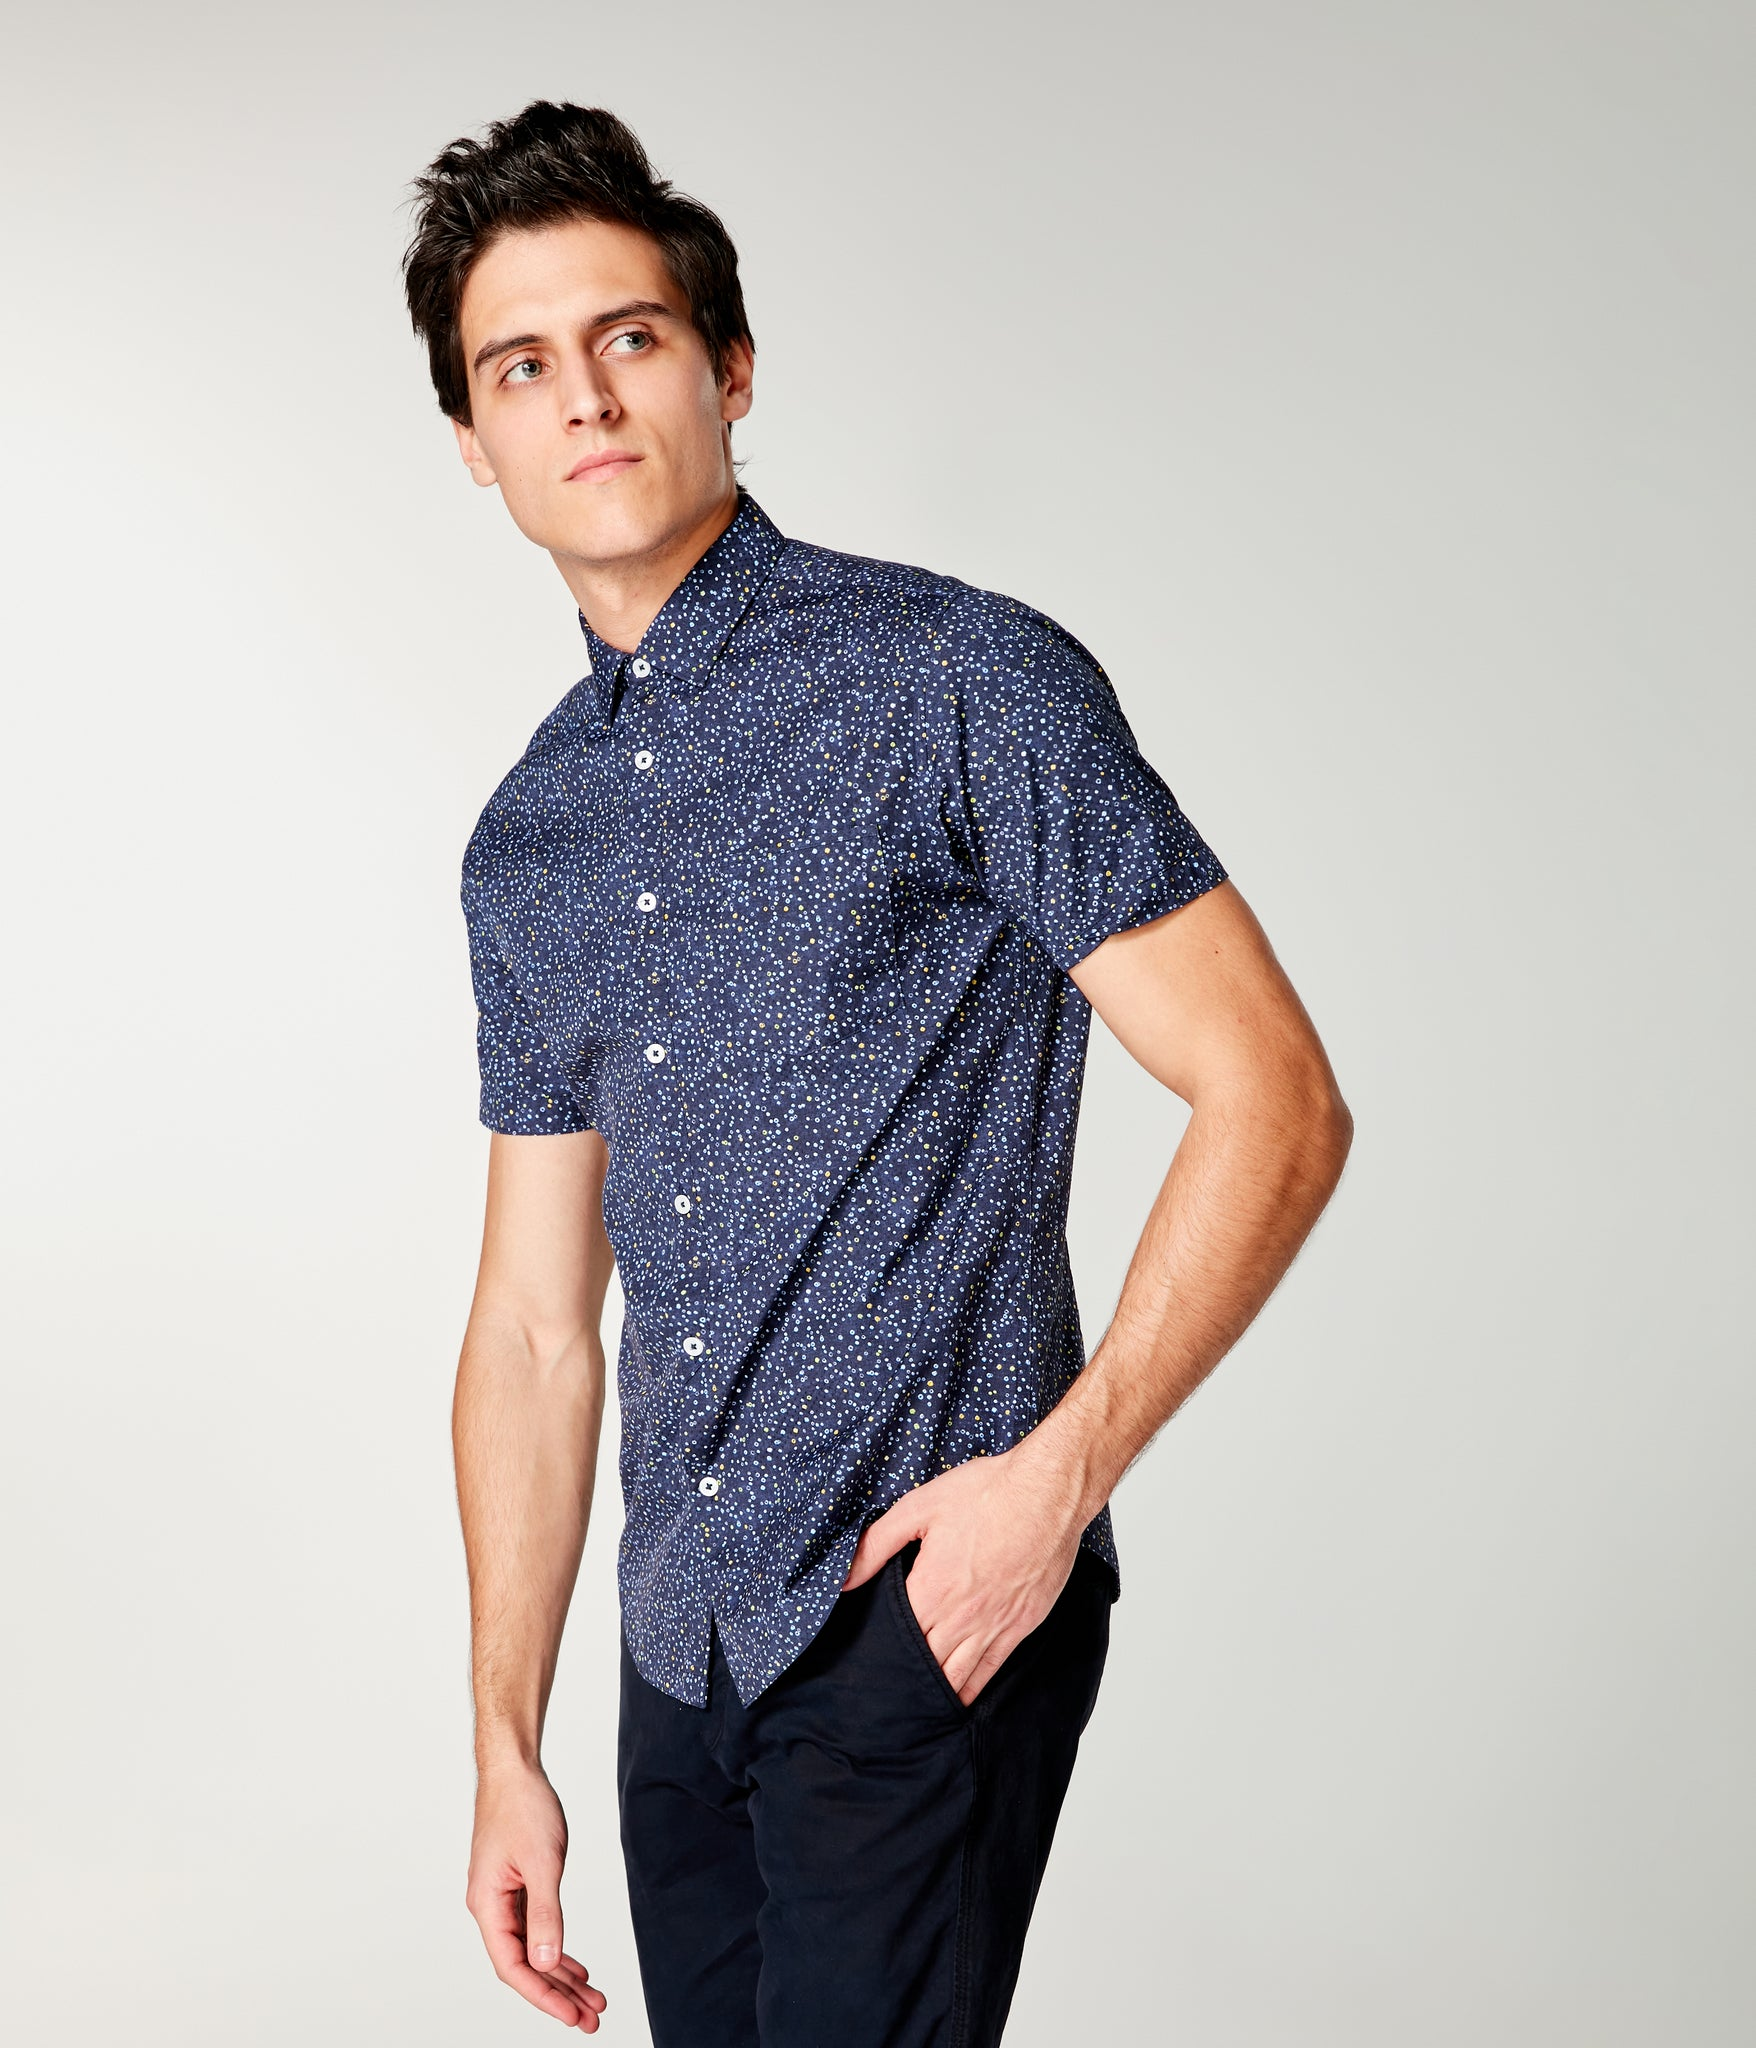 On-Point Print Shirt Short Sleeve - Blue Topaz Micro Dot